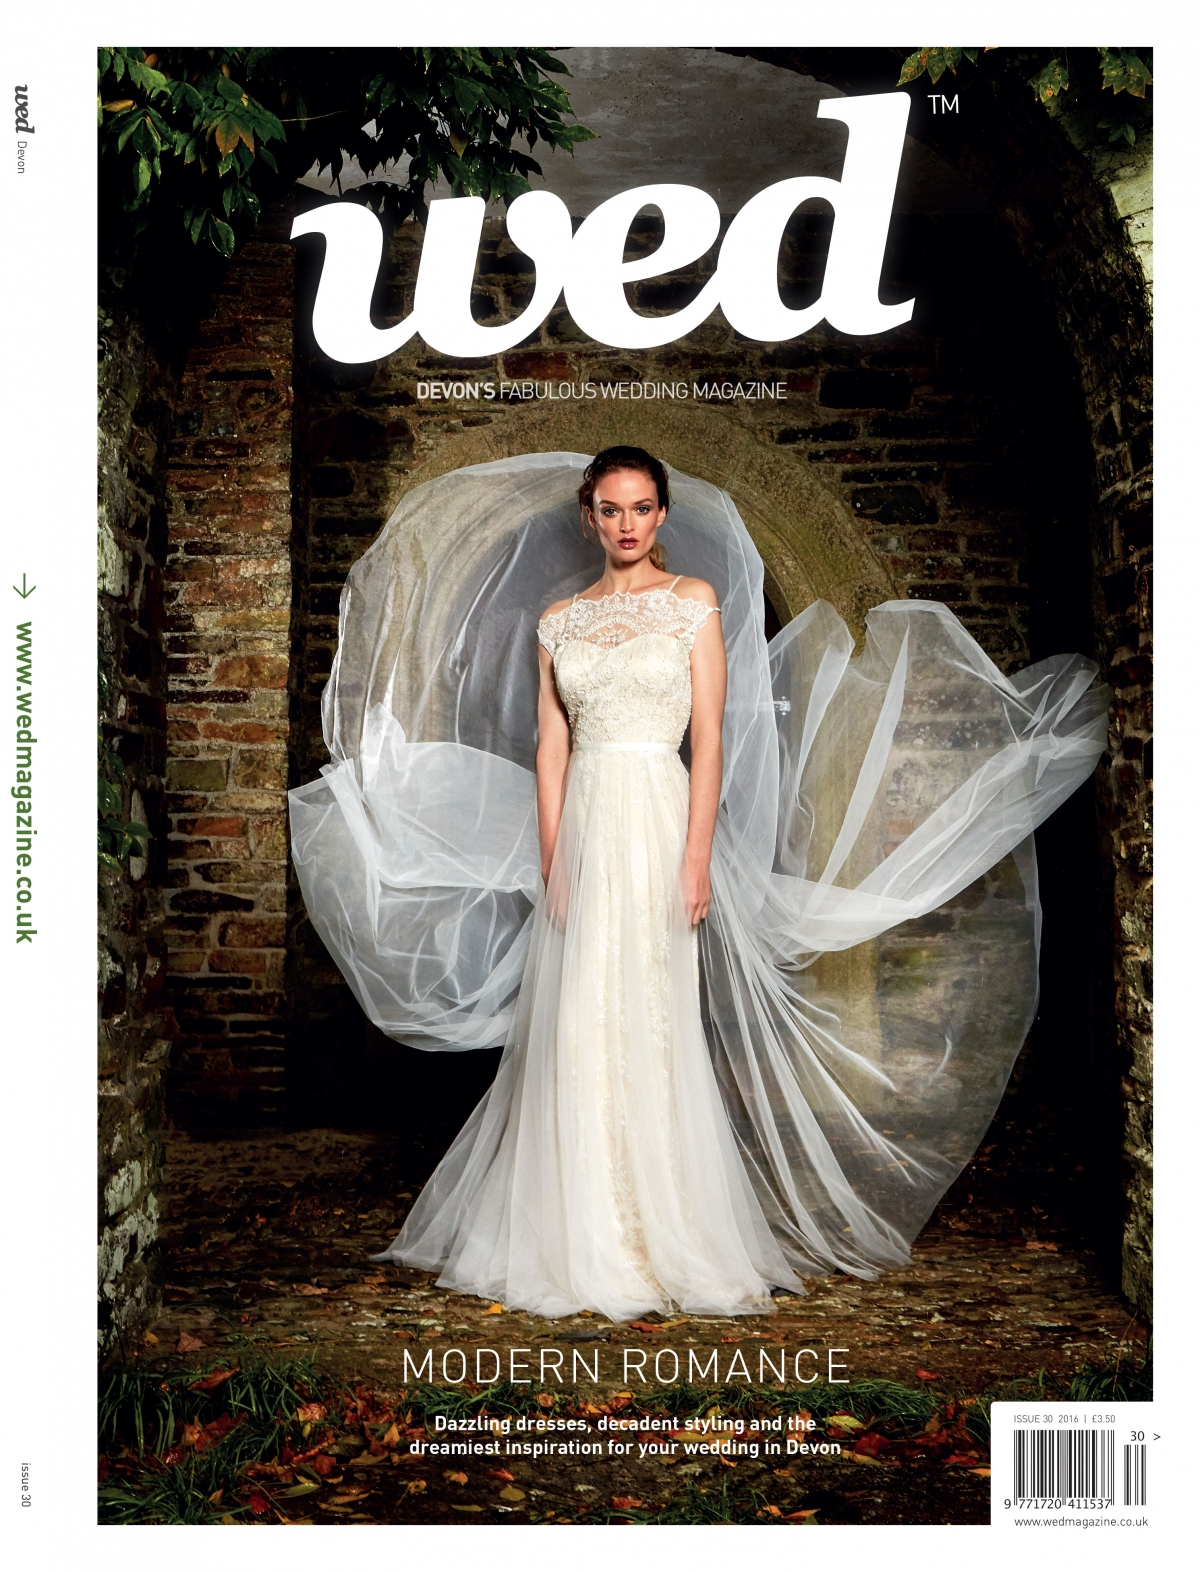 Wed Devon 30 Cover - Wed